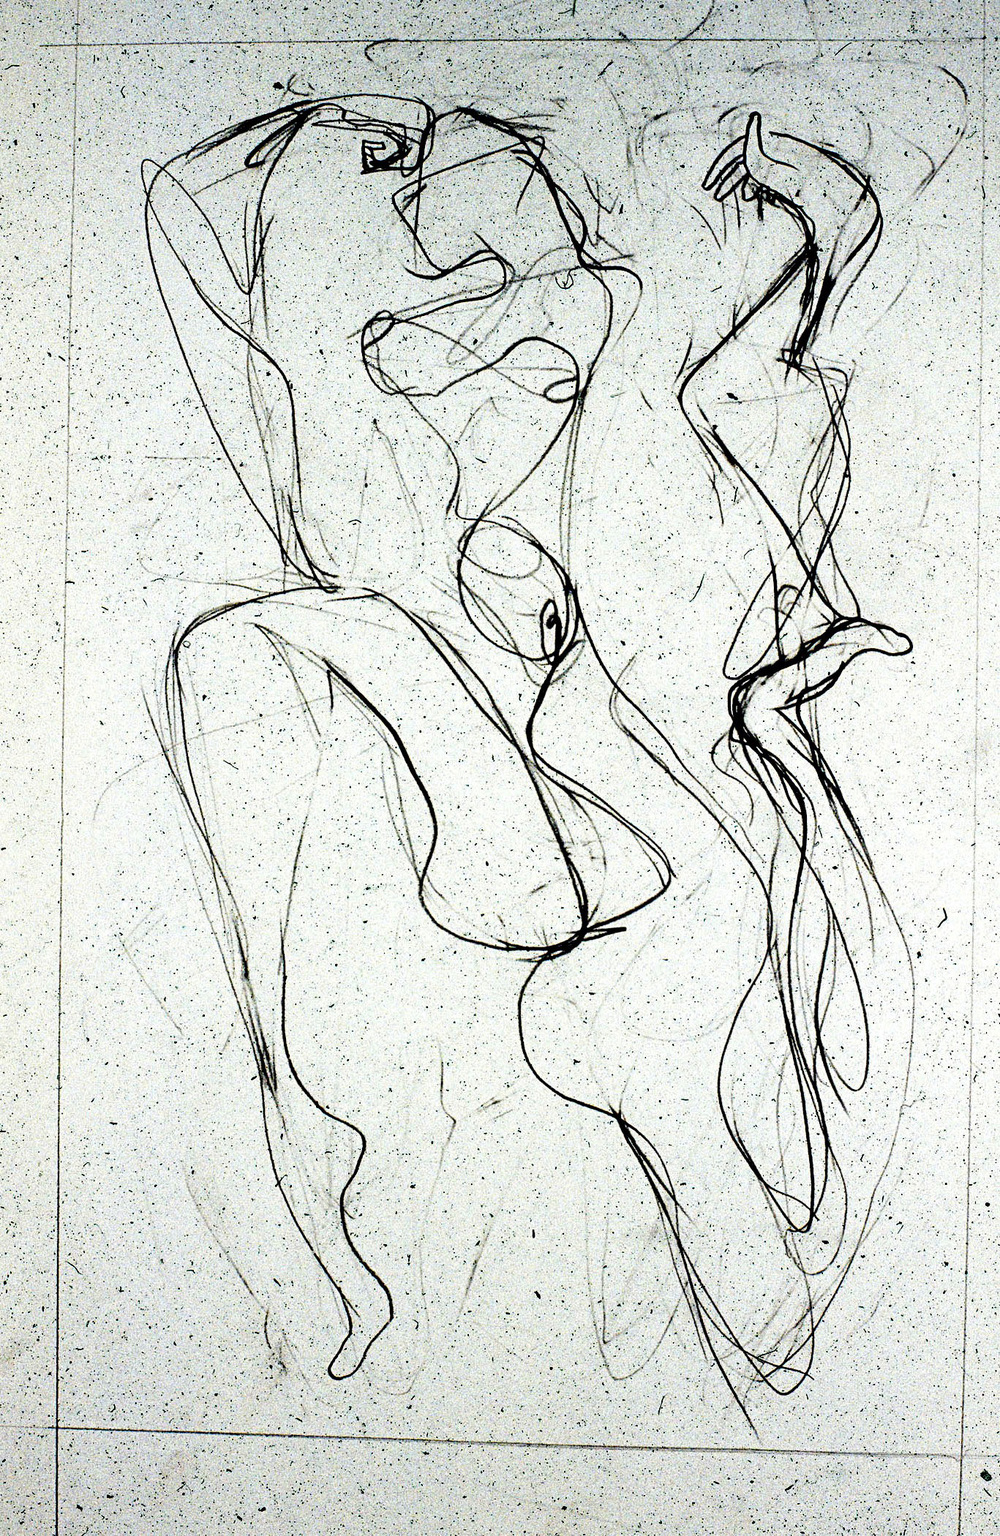 2012  Graphite on paper  24x18 in.